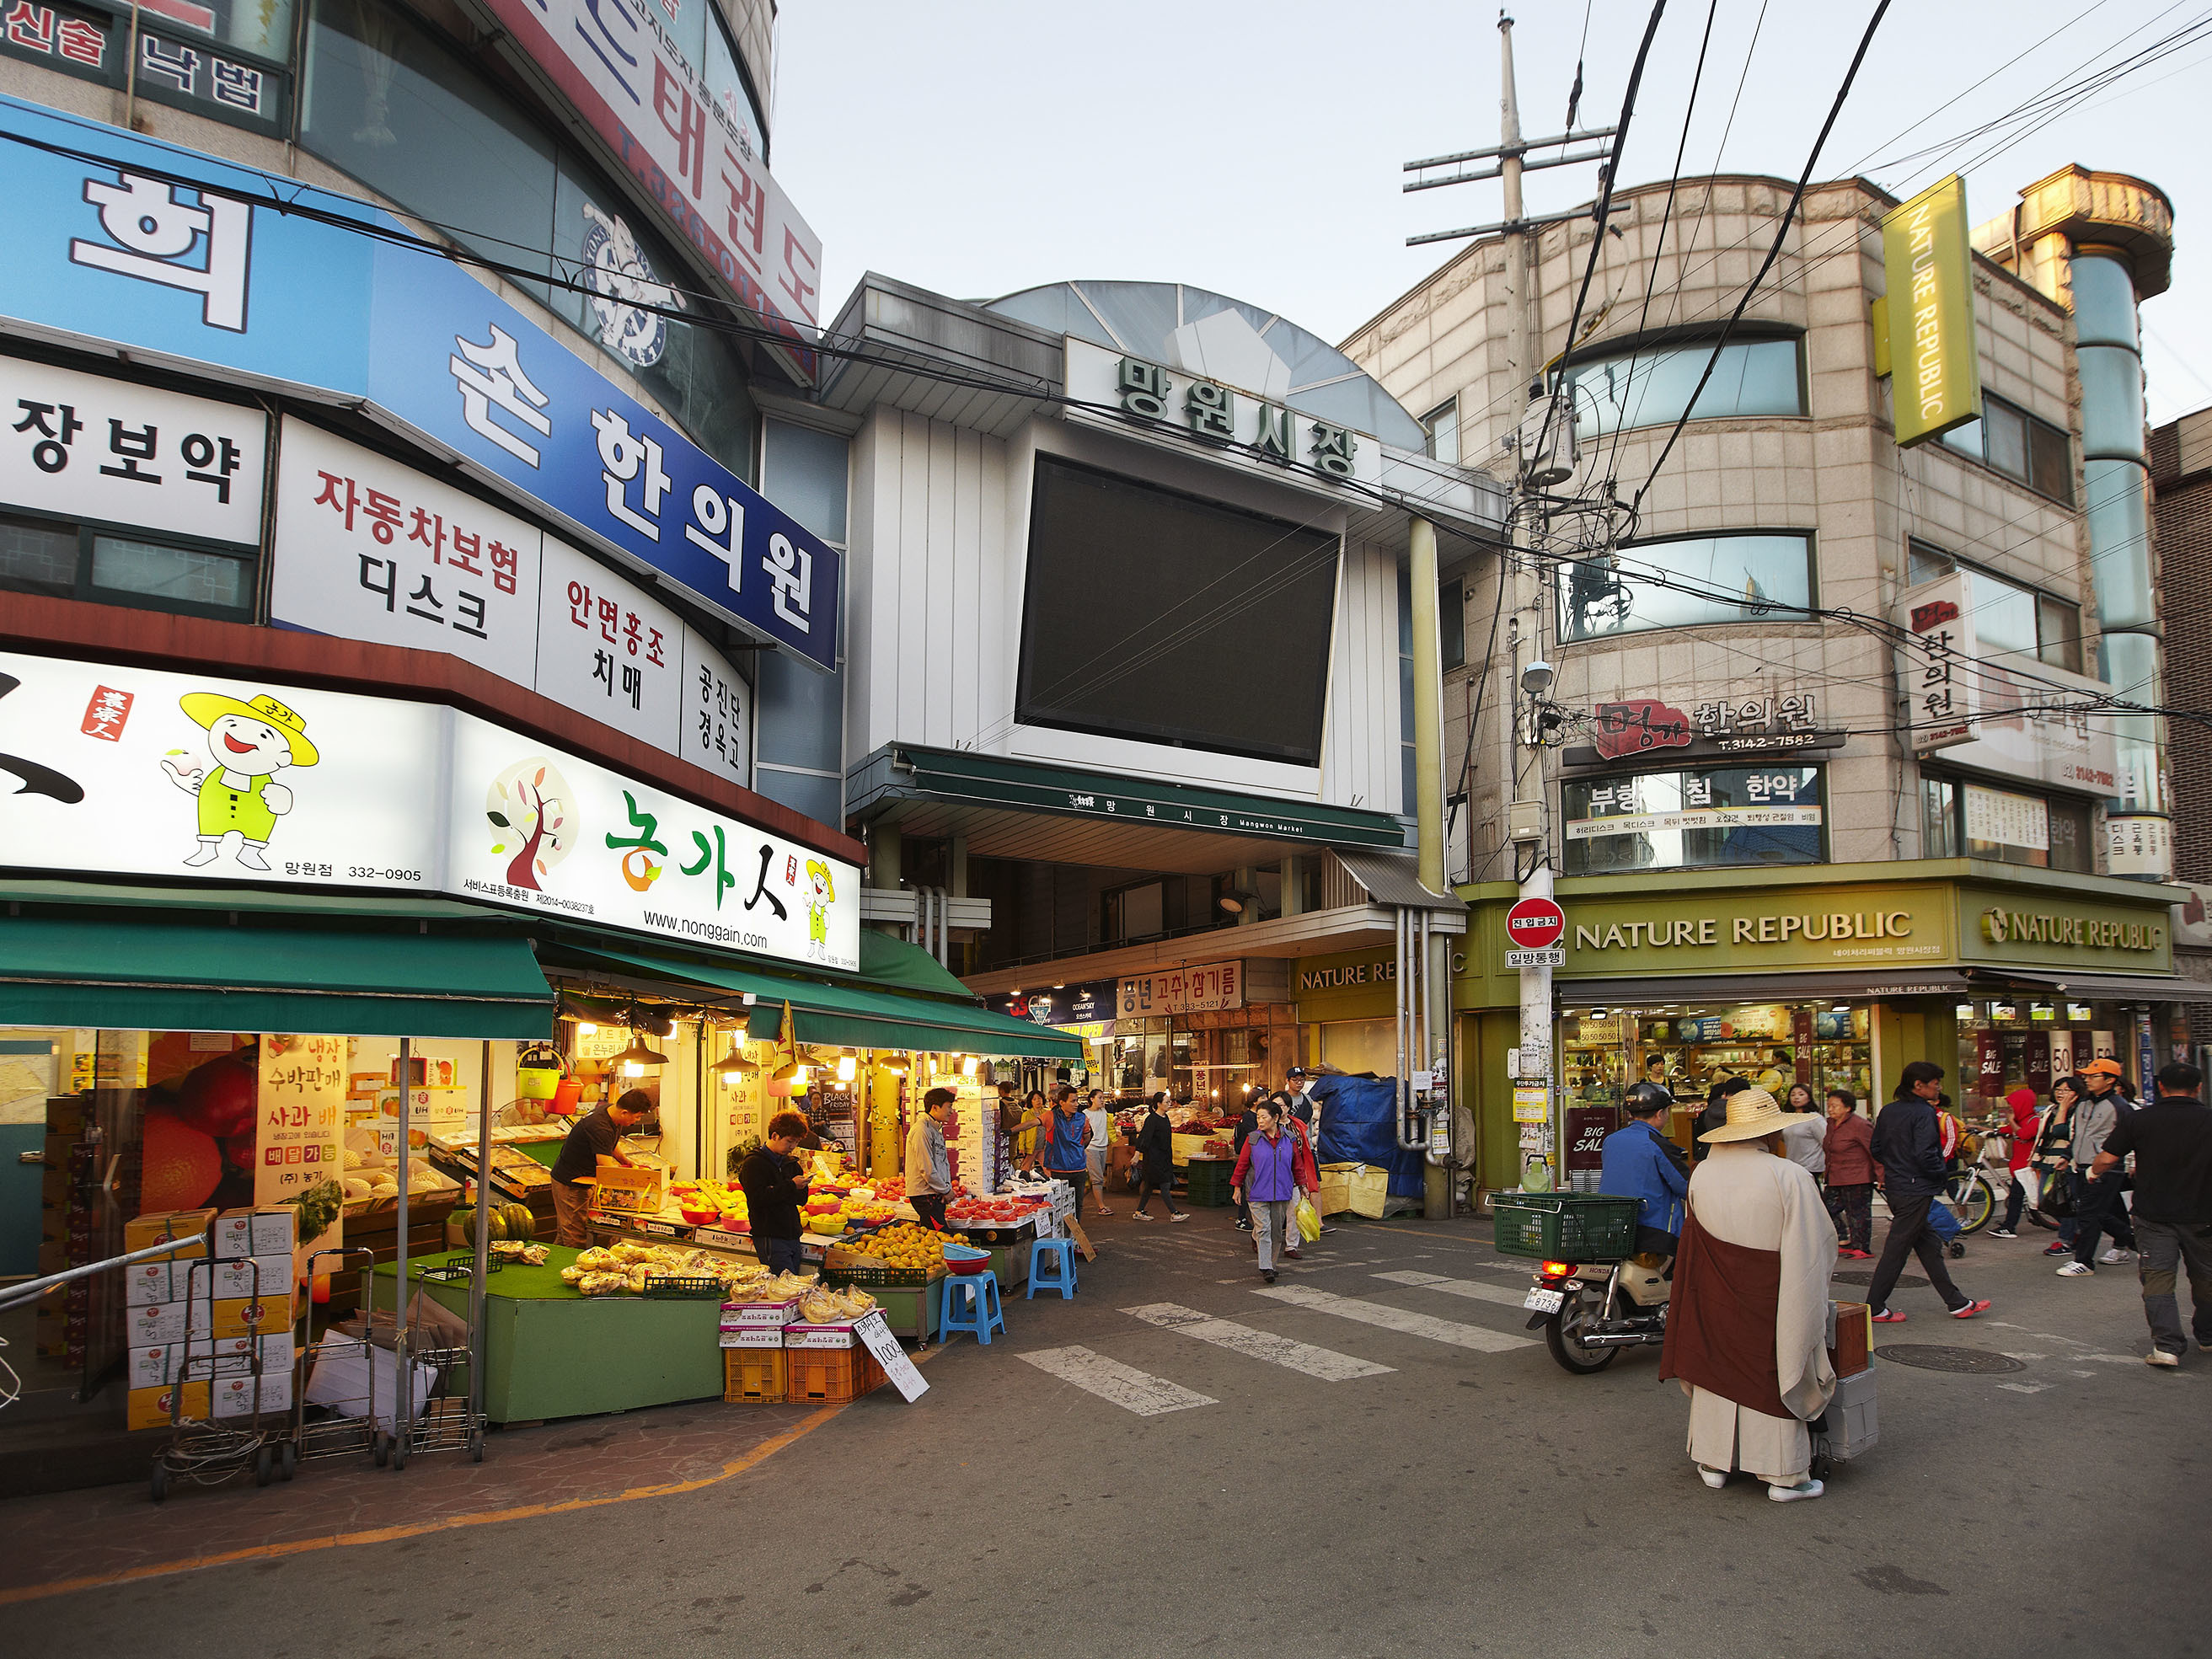 Enter snack heaven for just 10,000 won